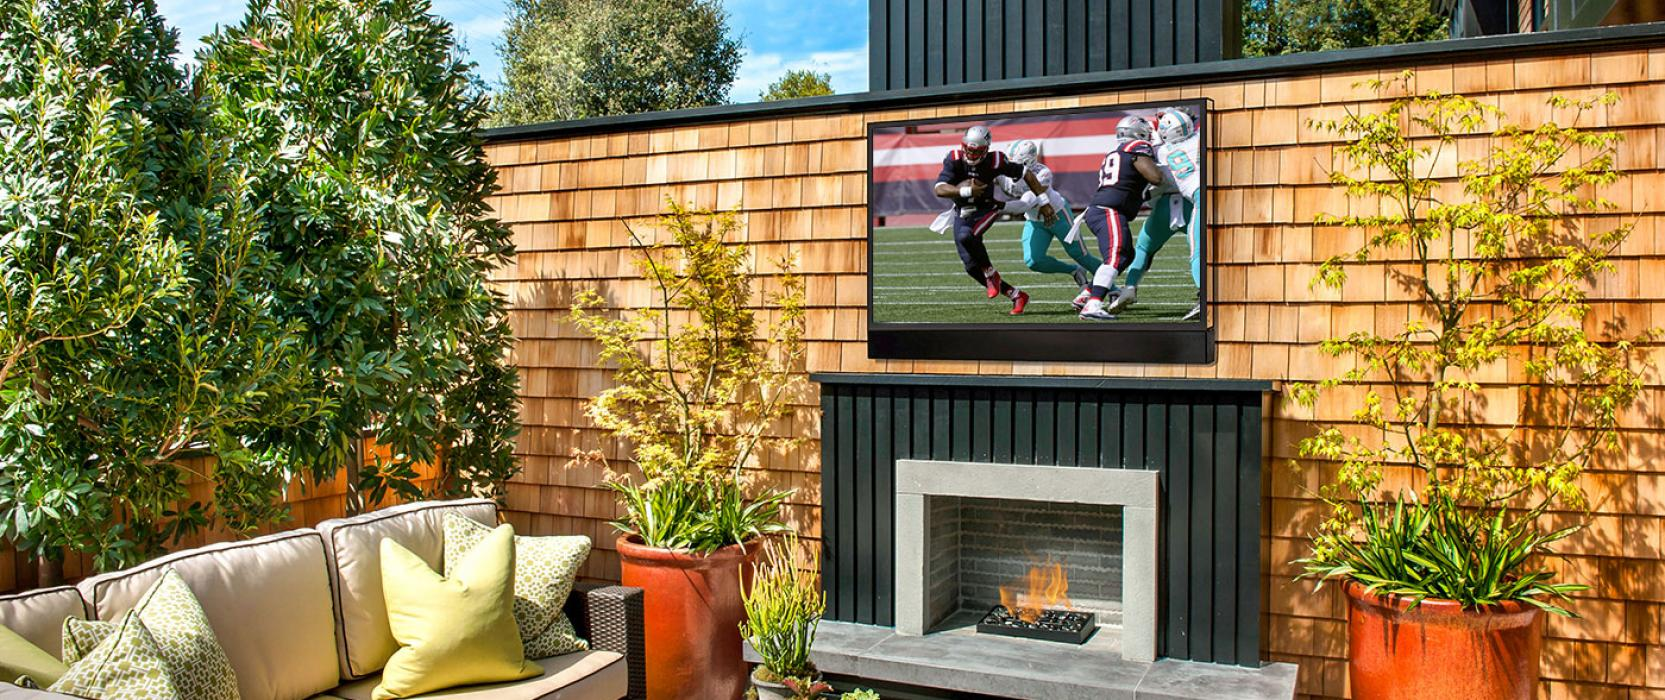 Seura Outdoor TV, available at Elite Media Solutions